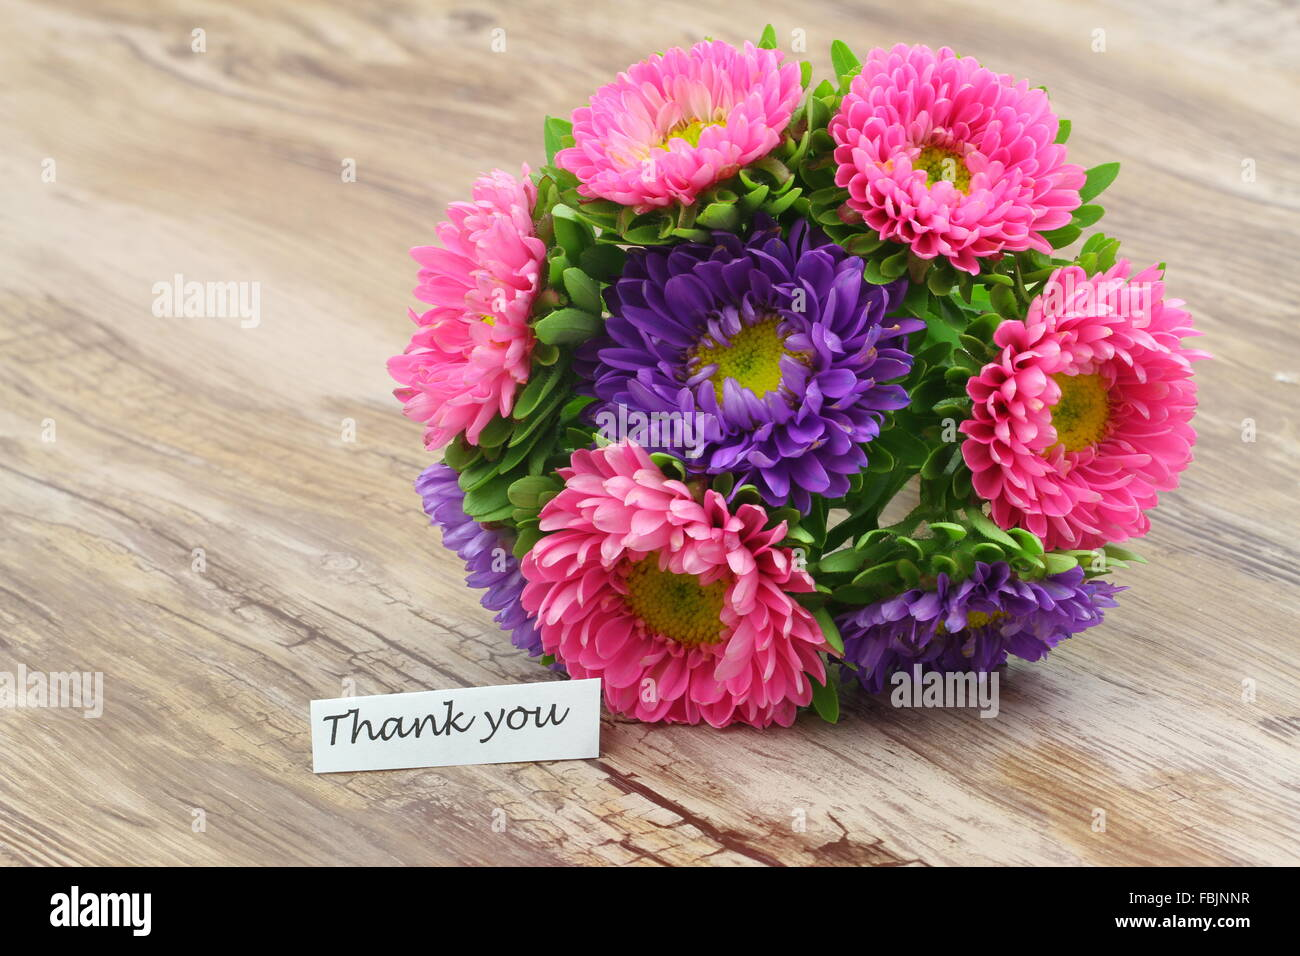 Thank you card with colorful daisy flower bouquet Stock Photo ...